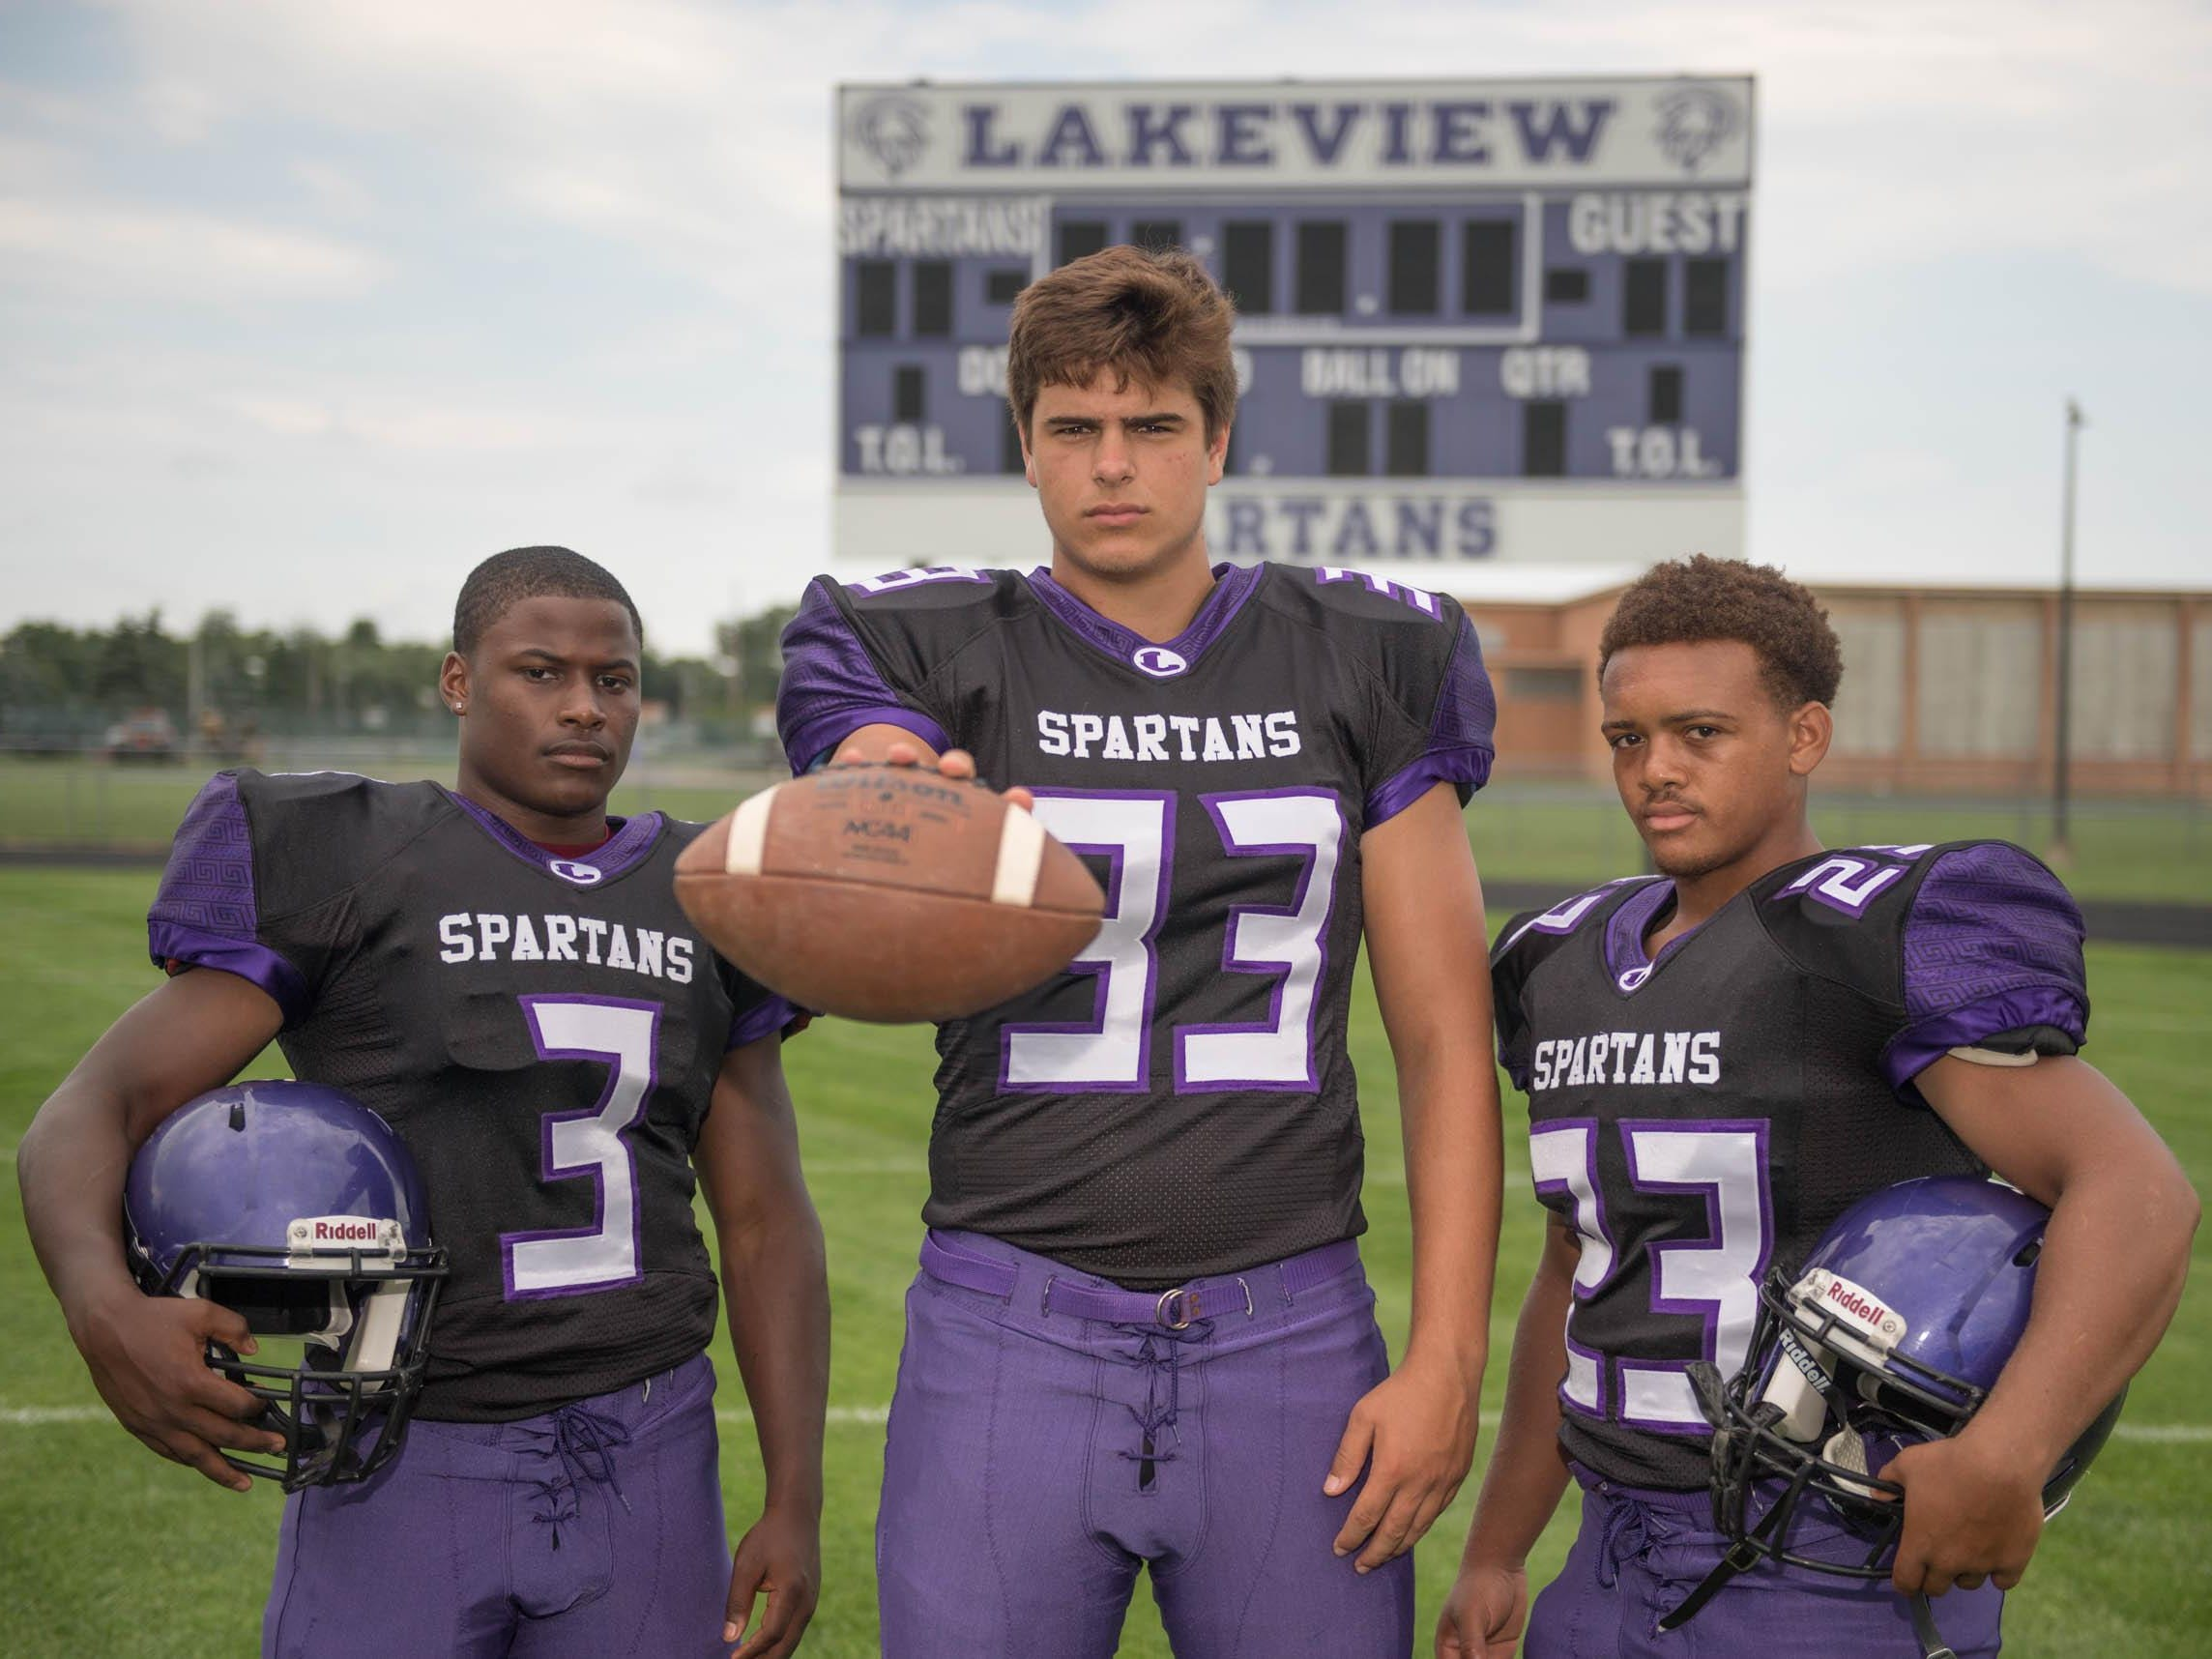 The 2016 Lakeview Spartans will be led by senior returners, from left, Jay'Vion Settles, Michael Miller and C.J. Foster.